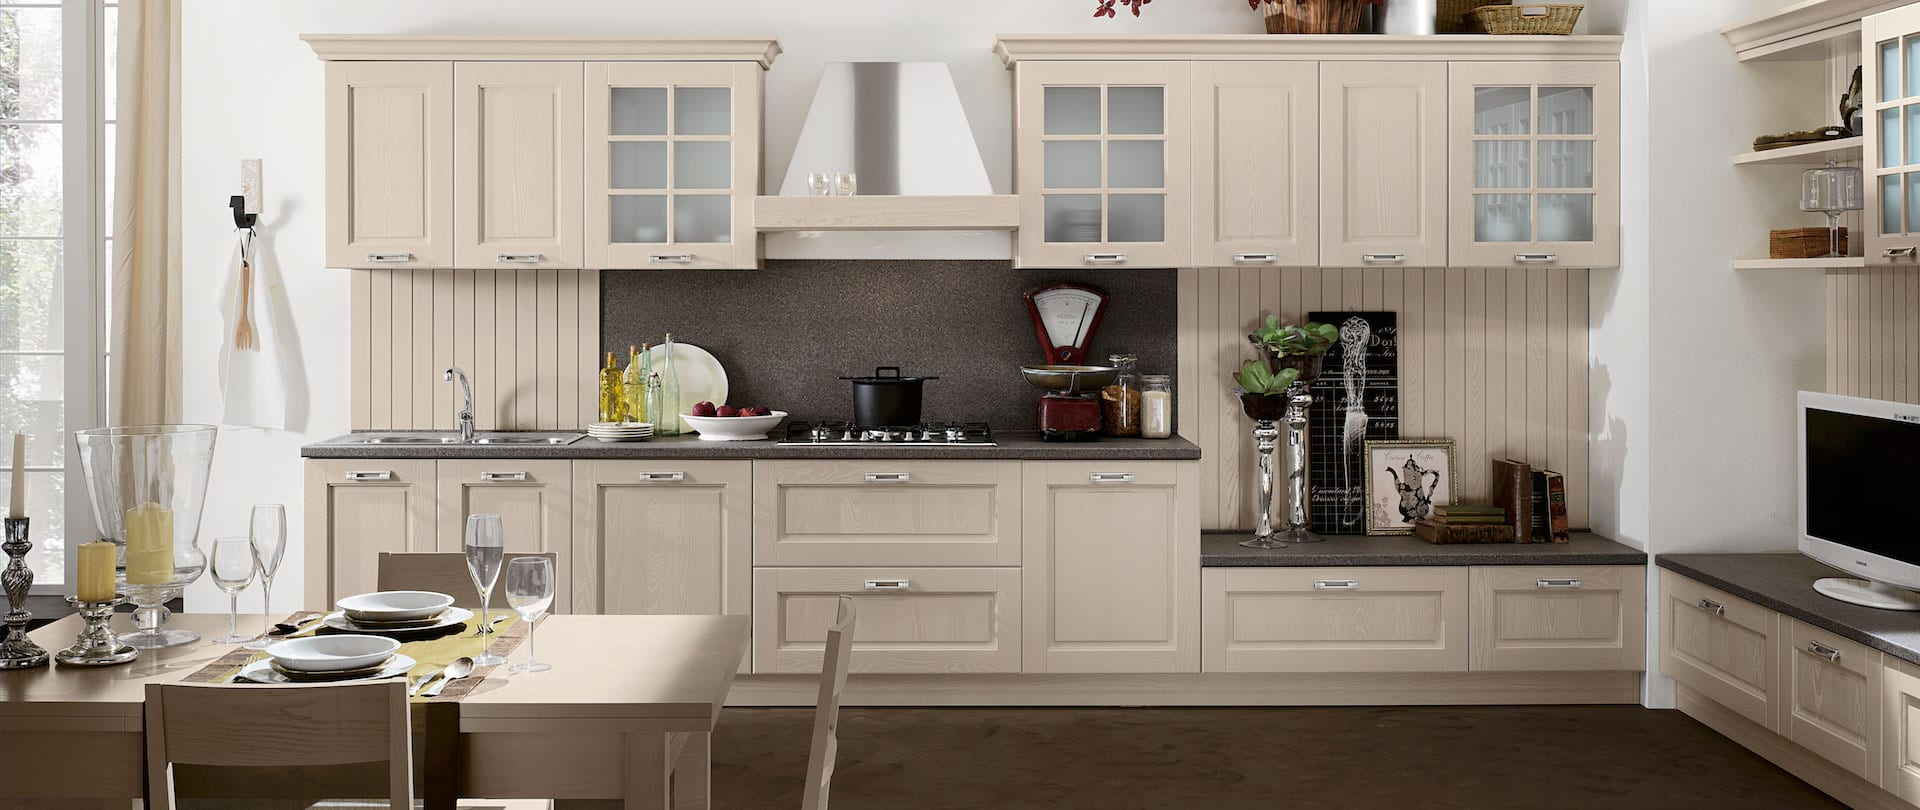 Old England kitchen, classic style, comfortable kitchens